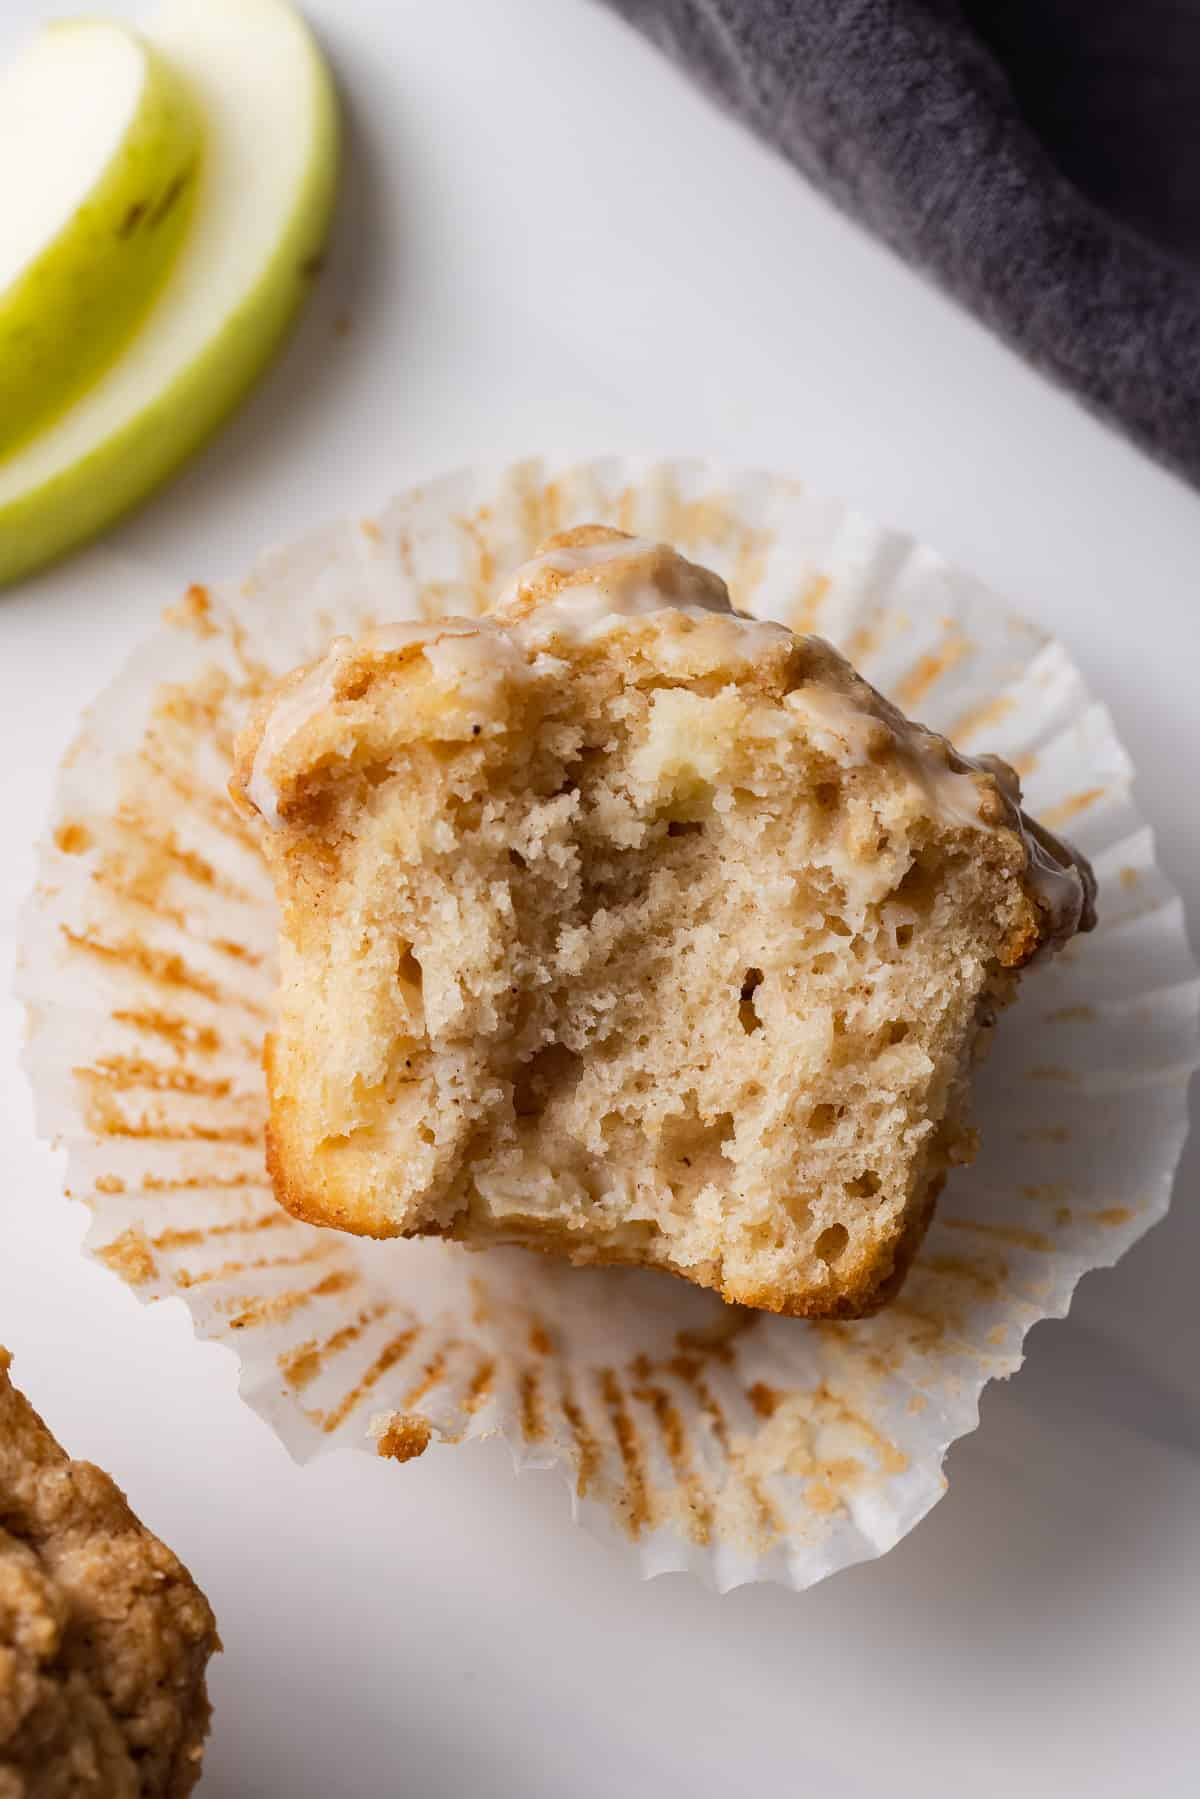 An apple streusel muffin with a bite missing